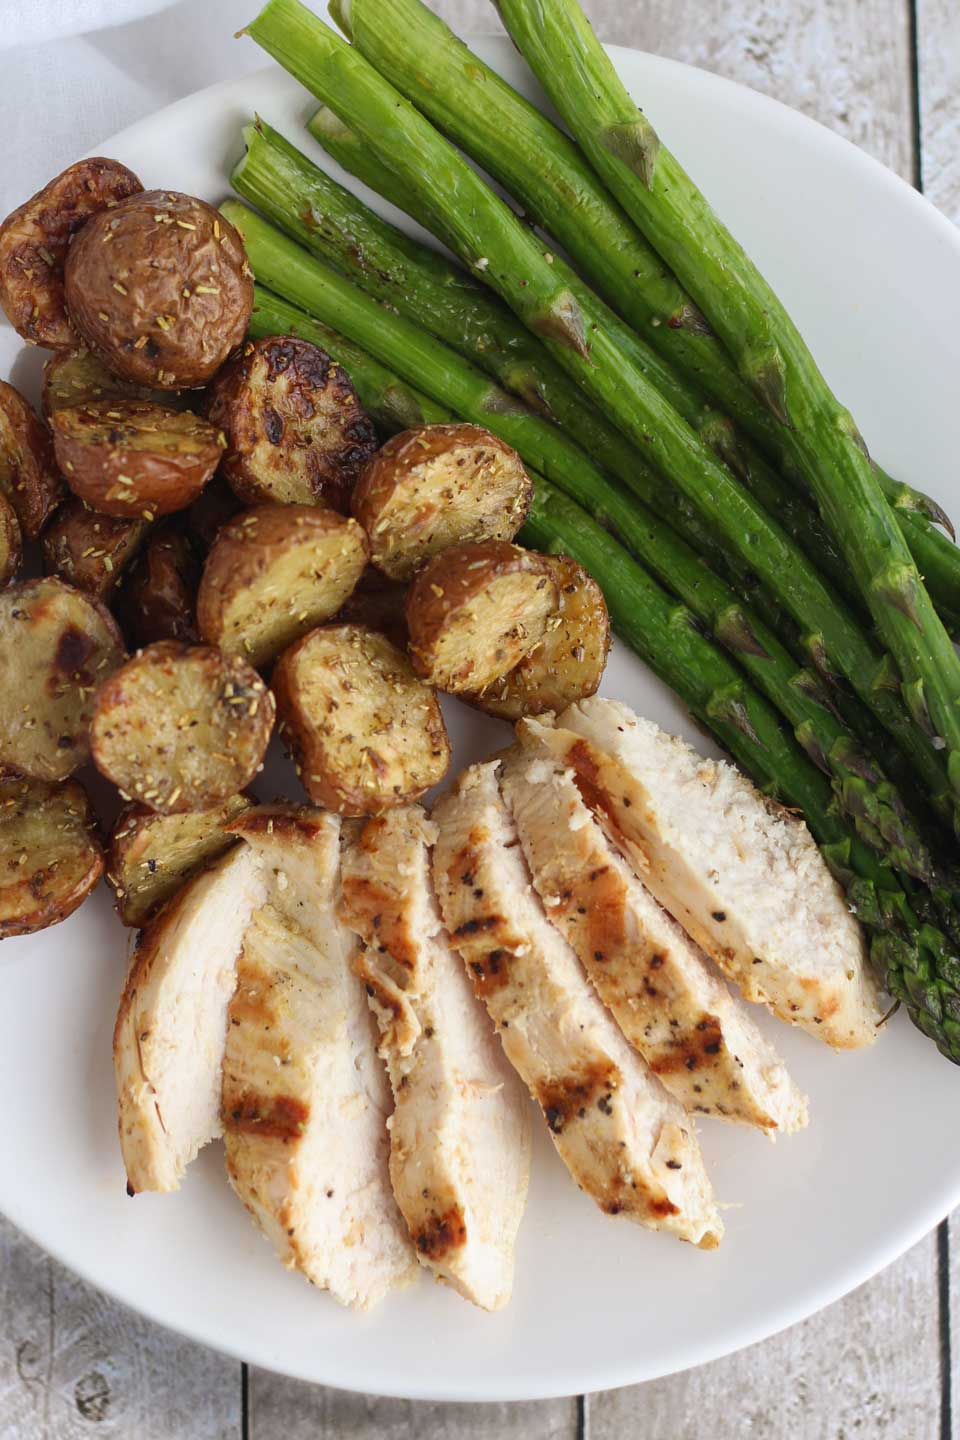 Closeup of a white dinner plate with slices of grilled, boneless chicken breast fanned out and surrounded by asparagus and roasted red potatoes.